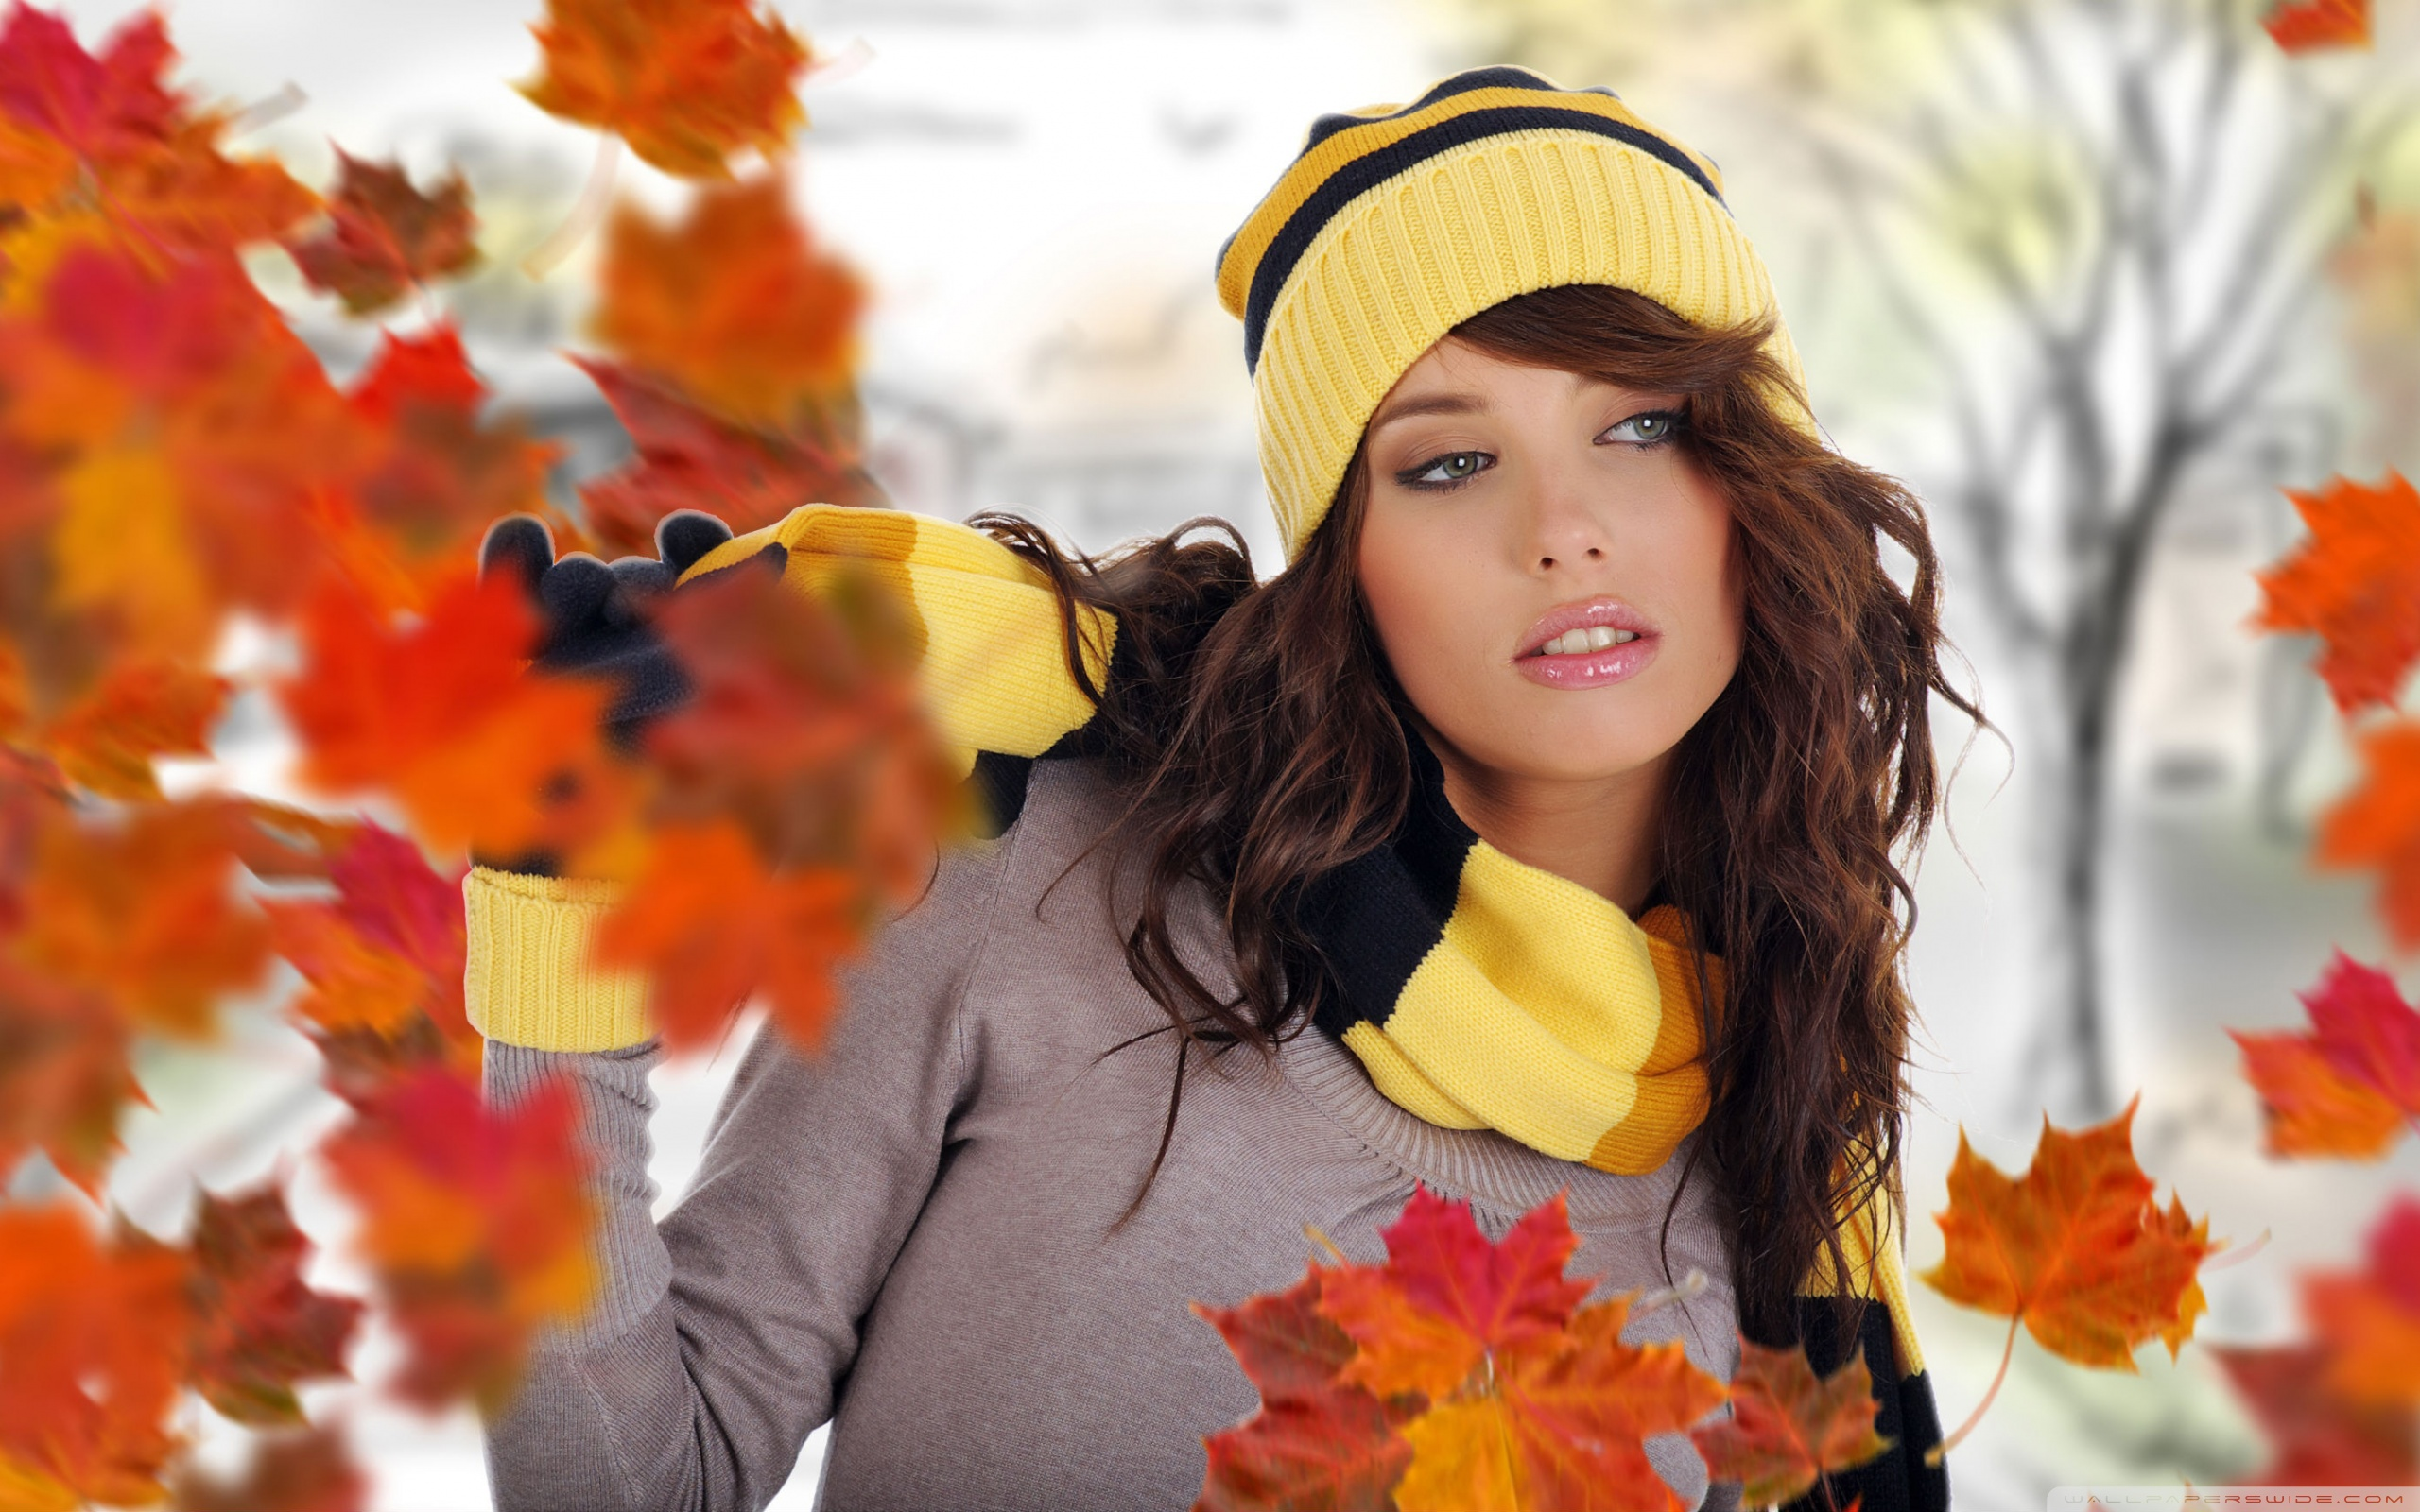 Related Wallpapers - Autumn Girl , HD Wallpaper & Backgrounds